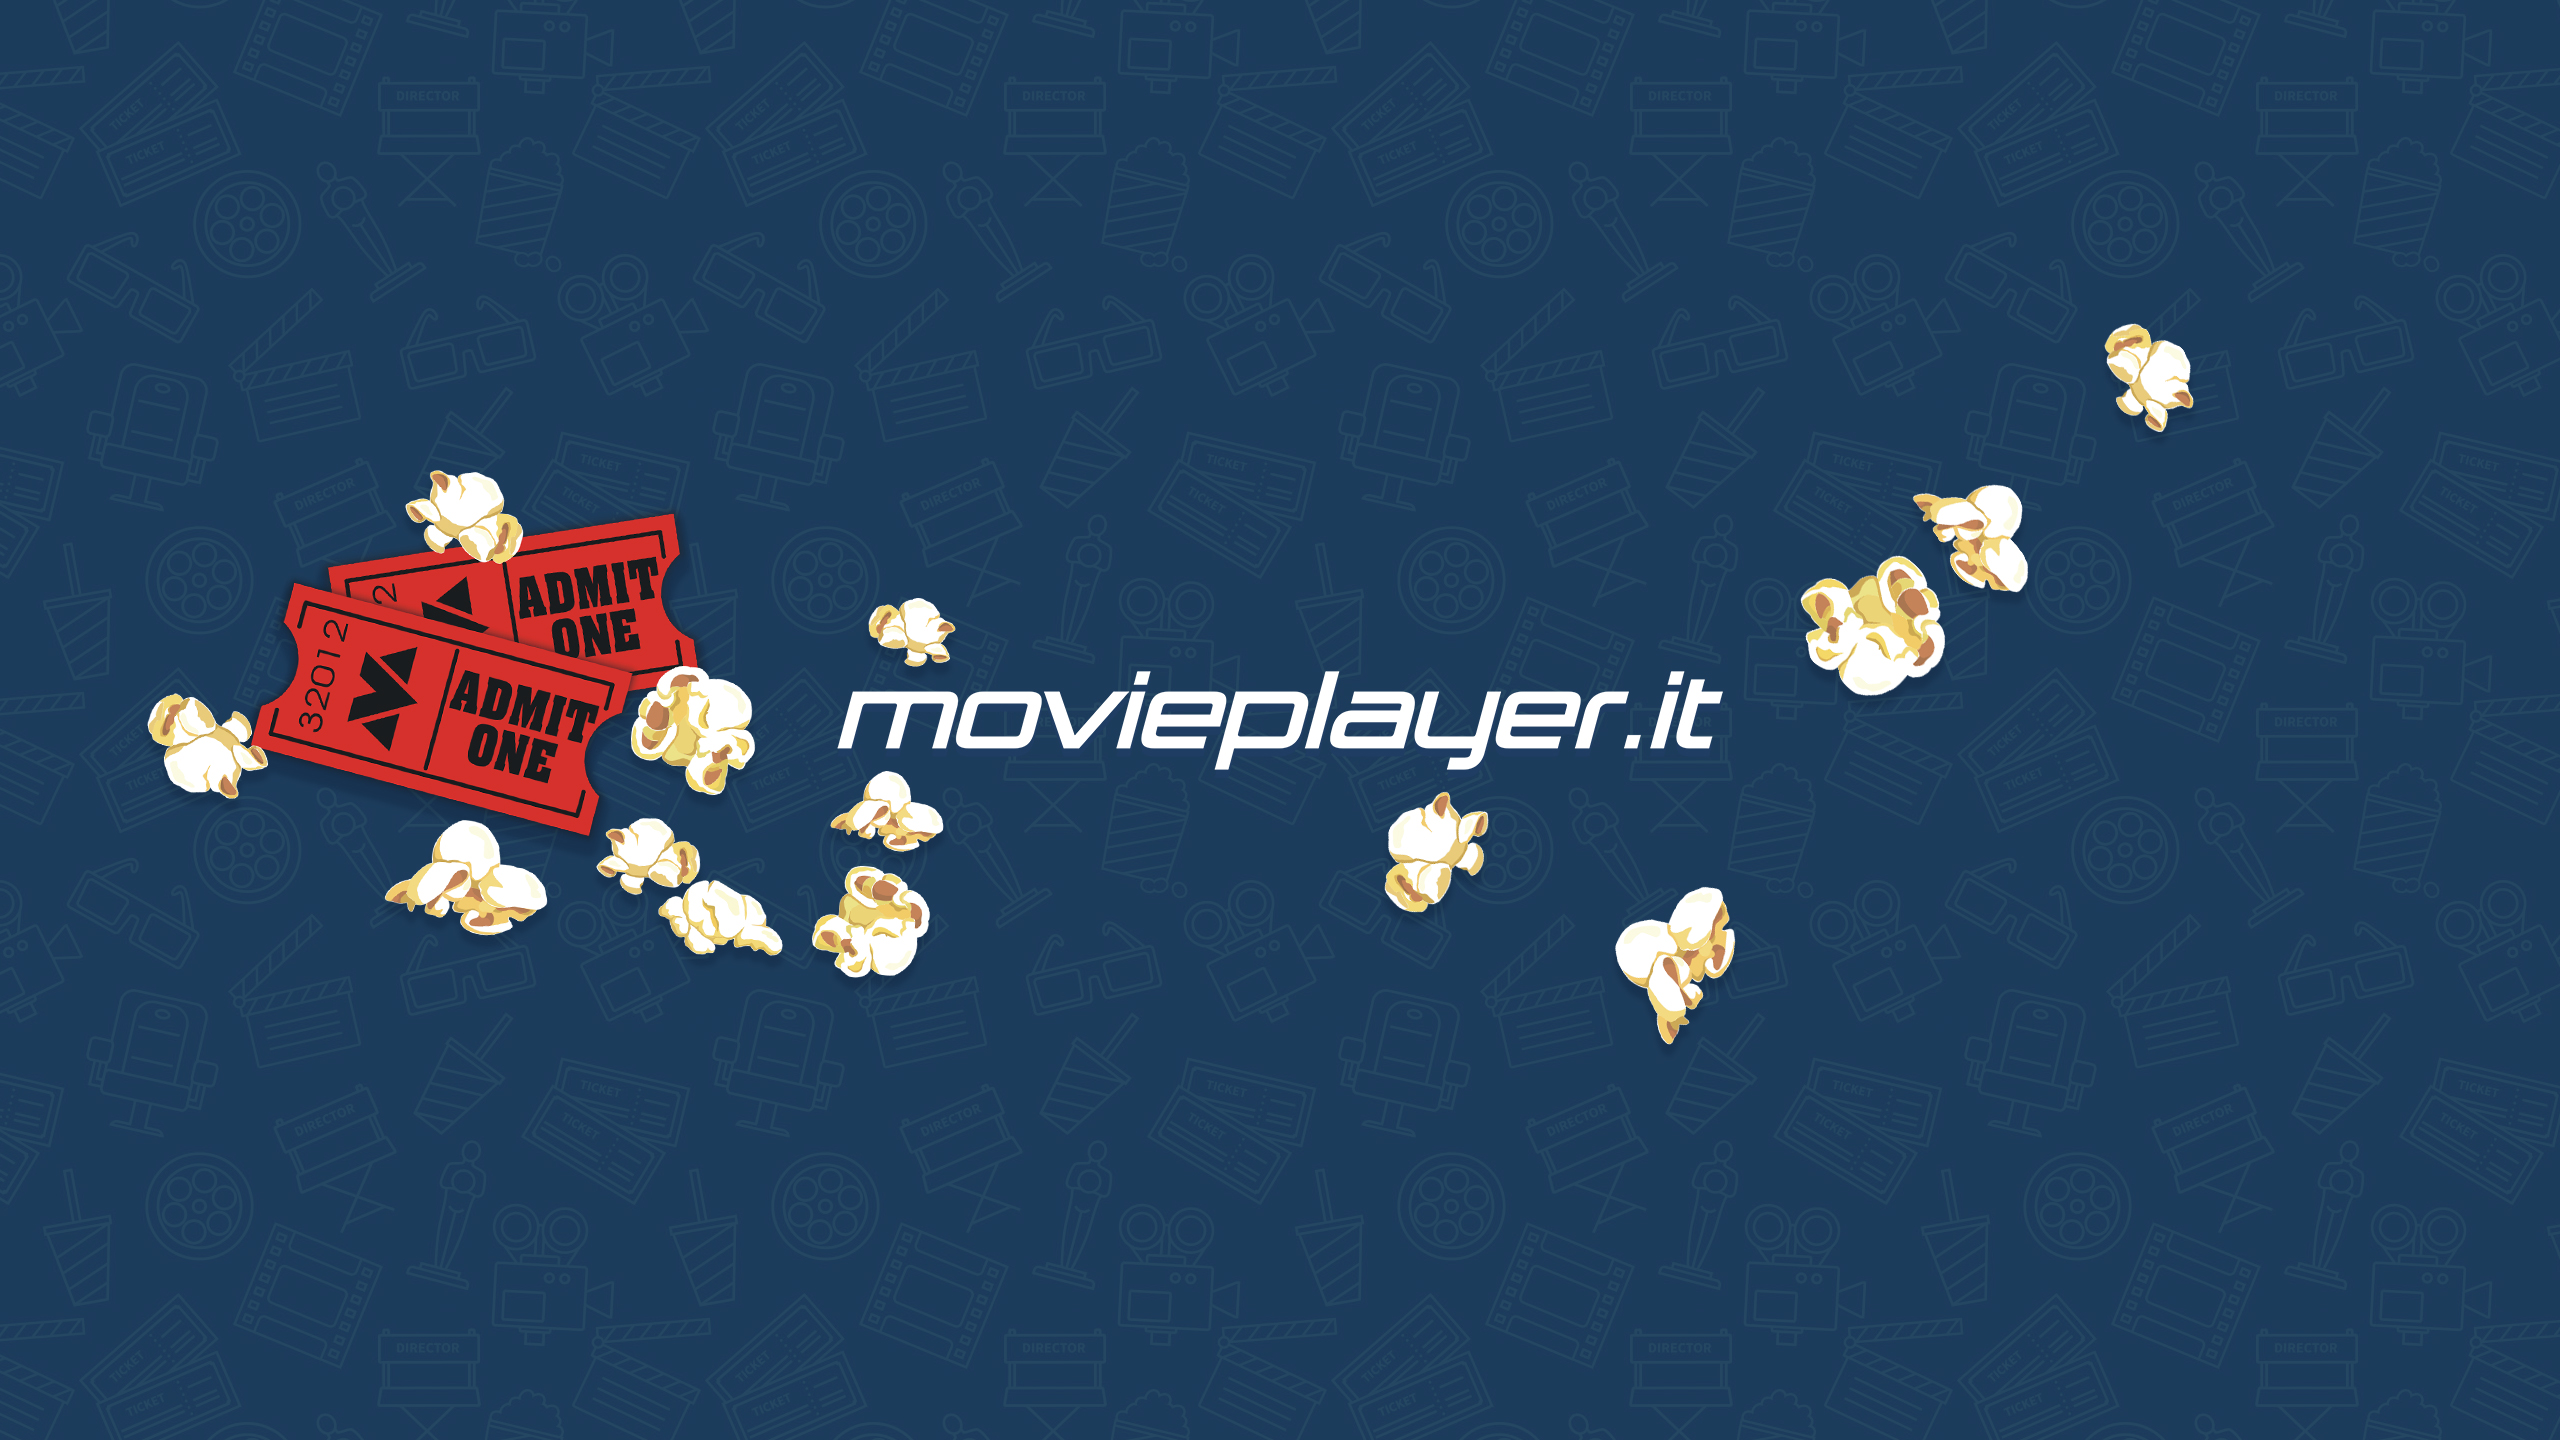 Movieplayer